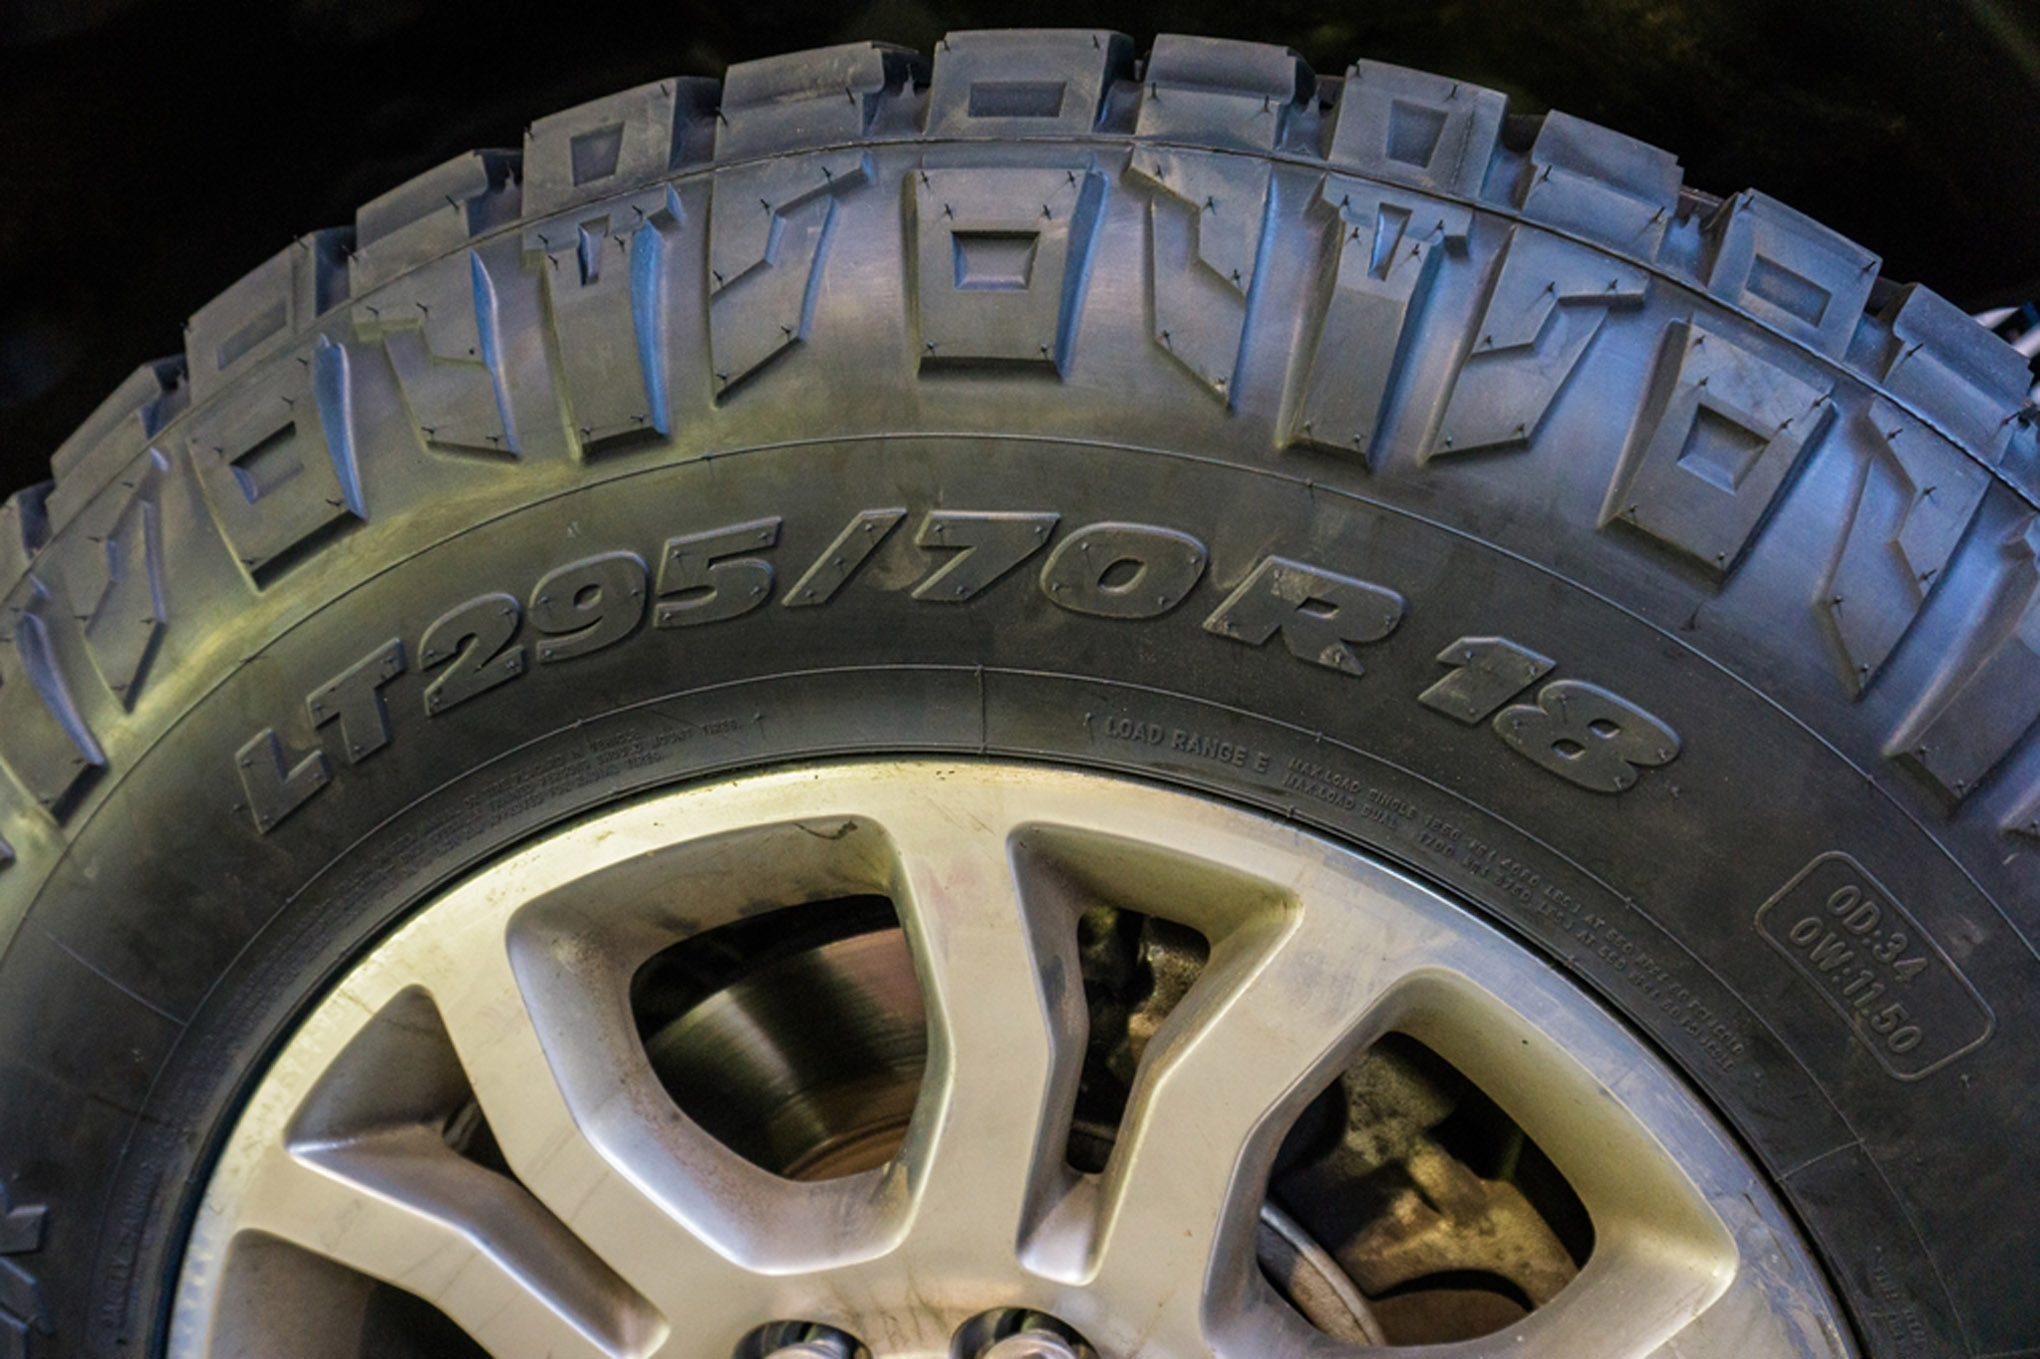 """Metric sizing is more common these days than floatation sizing and, like the rest of the metric system, can seem a bit foreign. In this example, """"295"""" is the section width, in millimeters. The larger the number, the wider the tire. """"70"""" is what is called the aspect ratio, which means that the sidewall is 70 percent of the section width (70 percent of 295 mm is the sidewall height). A higher aspect ratio results in a taller sidewall, but also a wider section width with the same aspect ratio also results in a physically taller sidewall. After all that metric math, """"18"""" is the rim diameter in inches."""